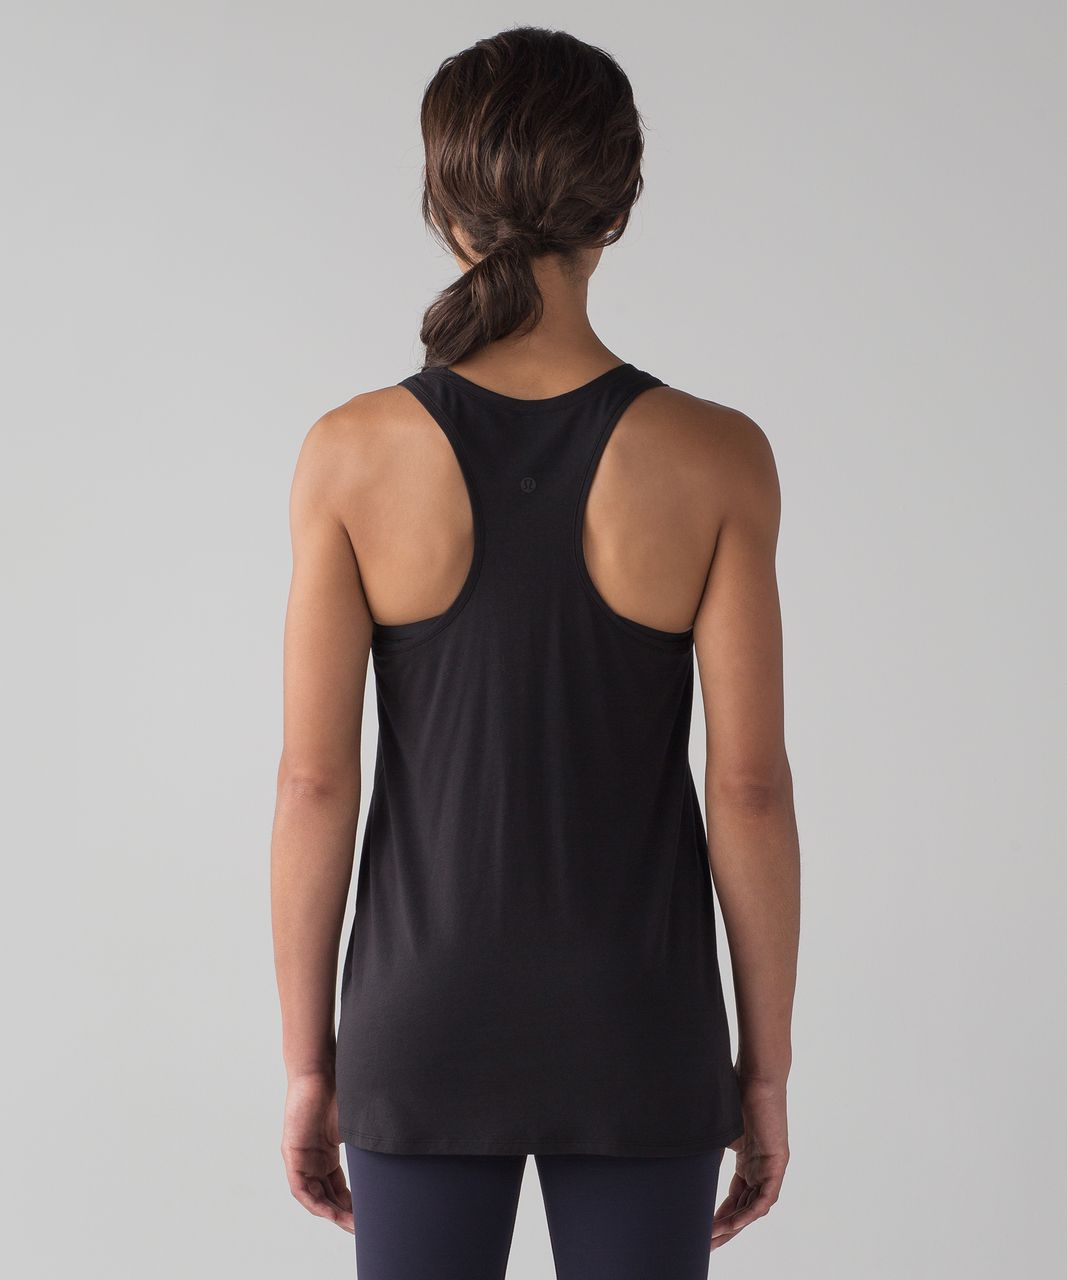 Lululemon Love Tank - Black (First Release)